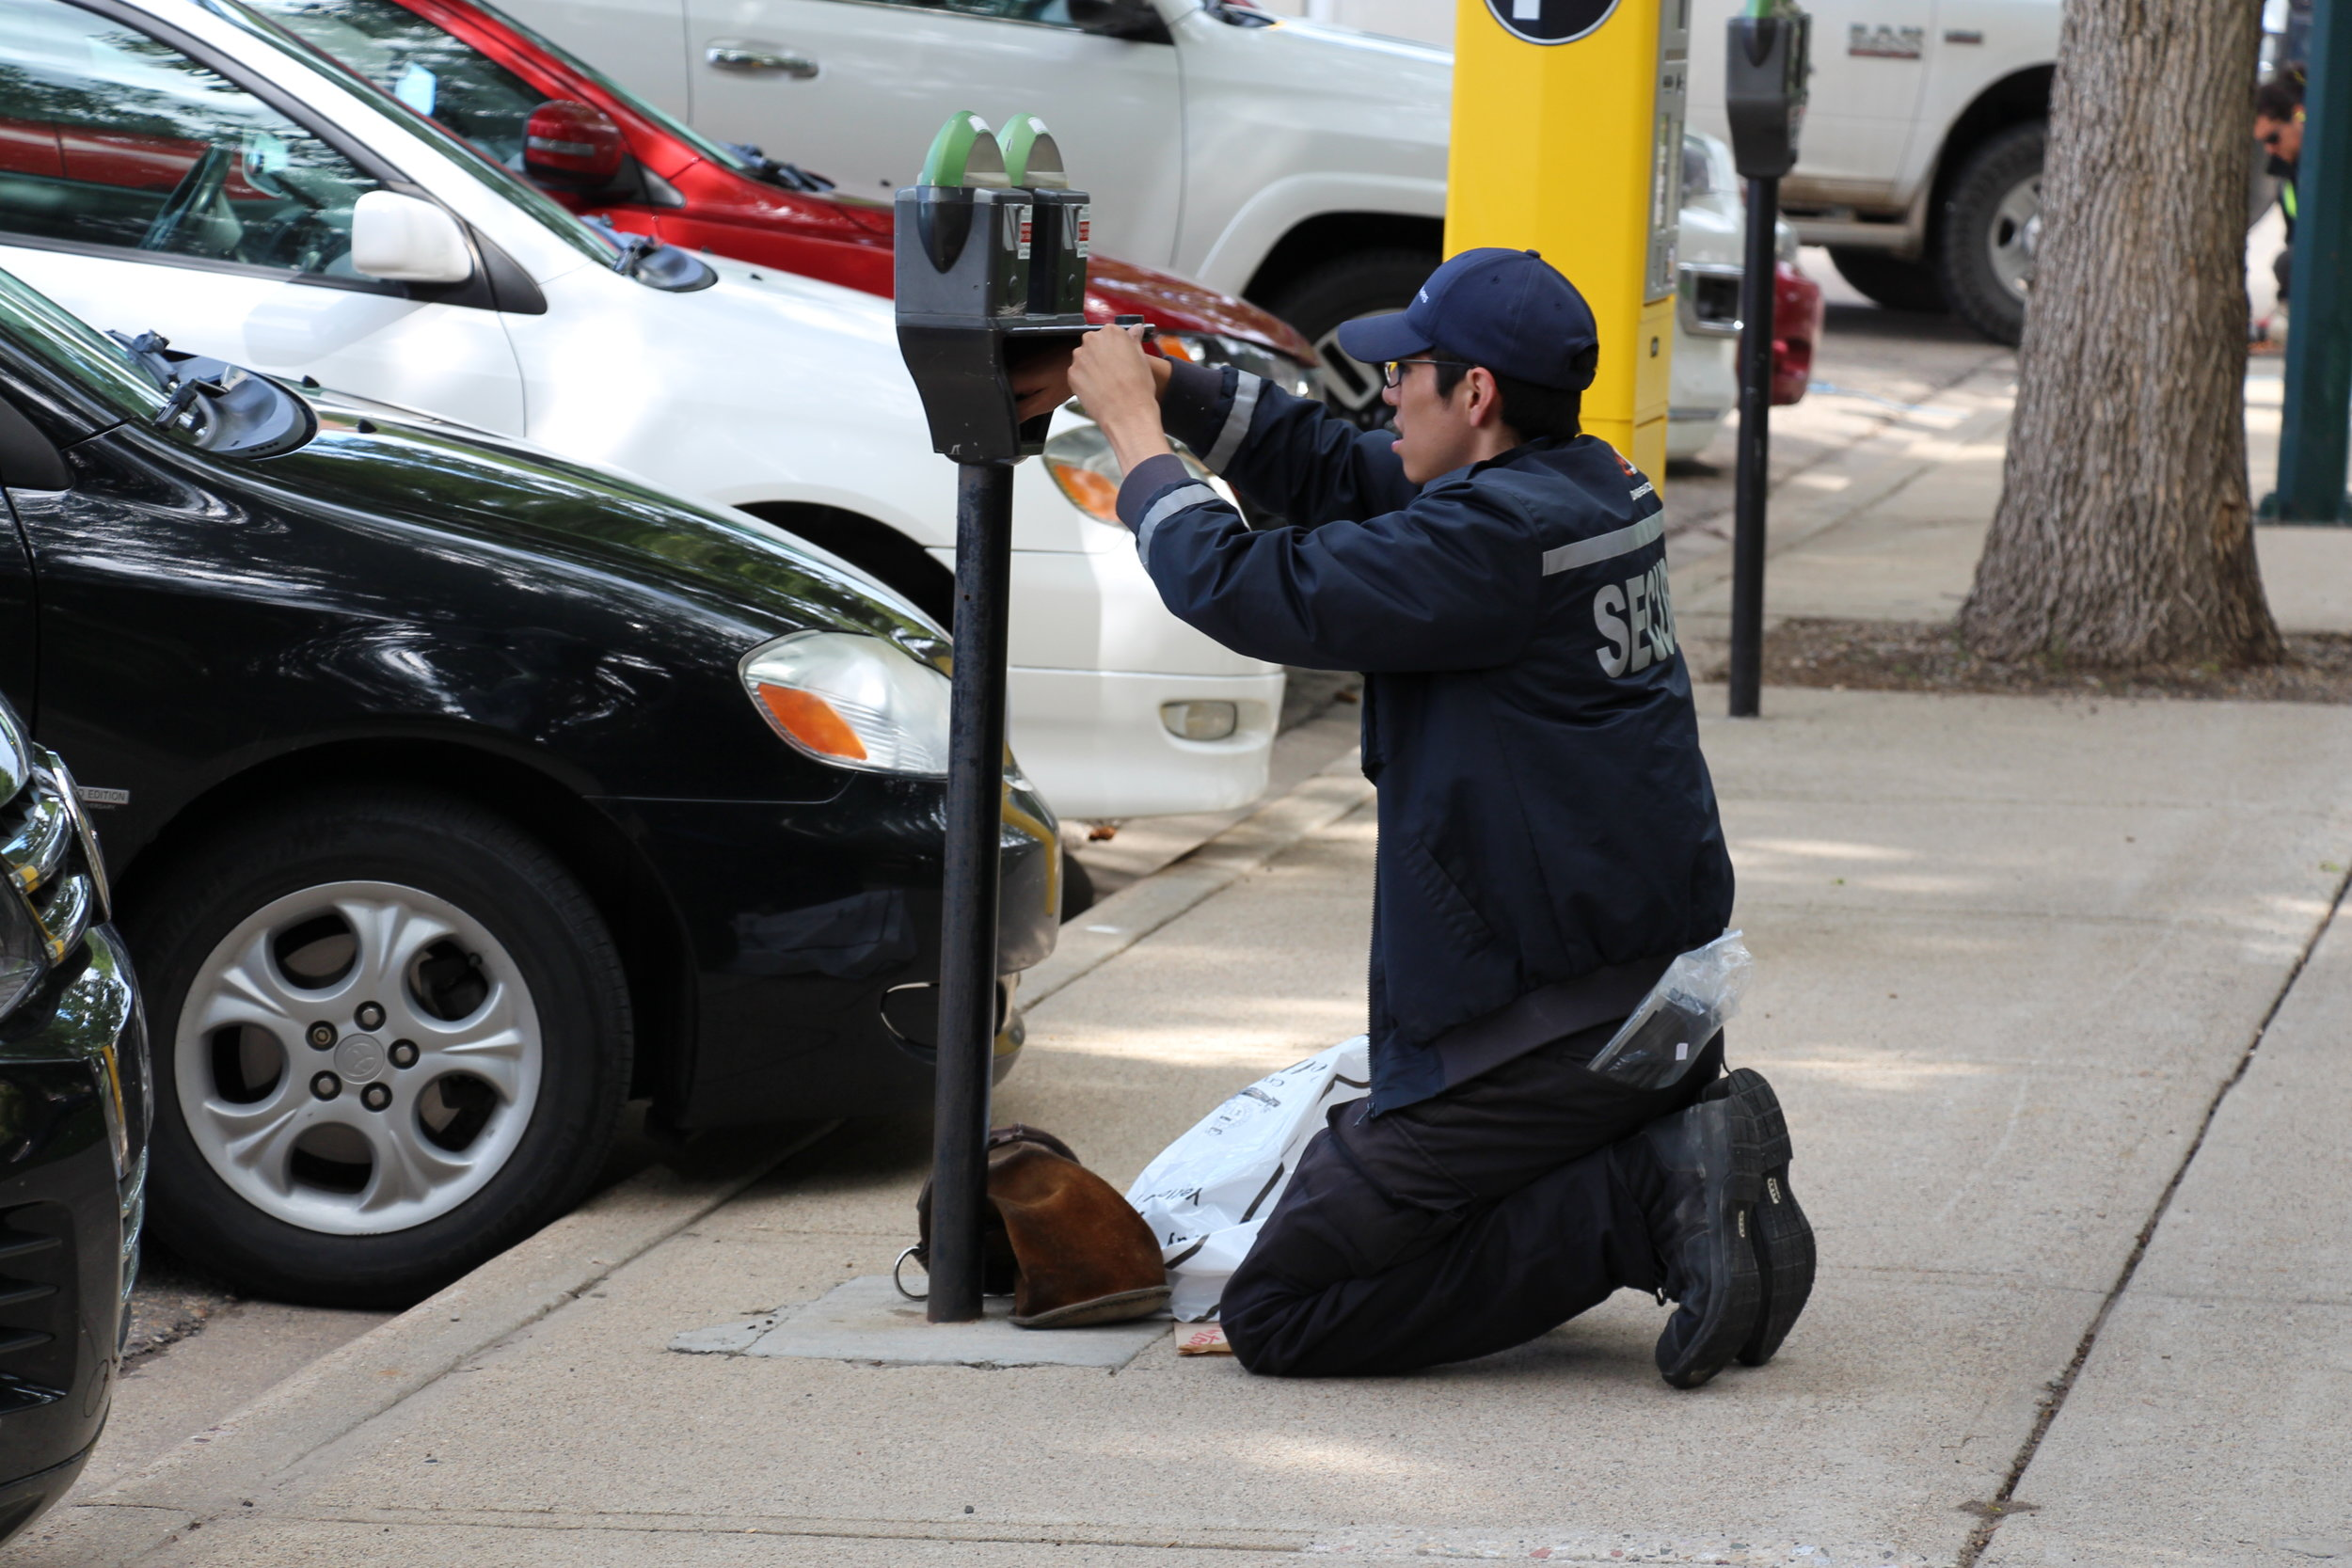 A person  works on a parking meter, with a new yellow parking kiosk in the background.